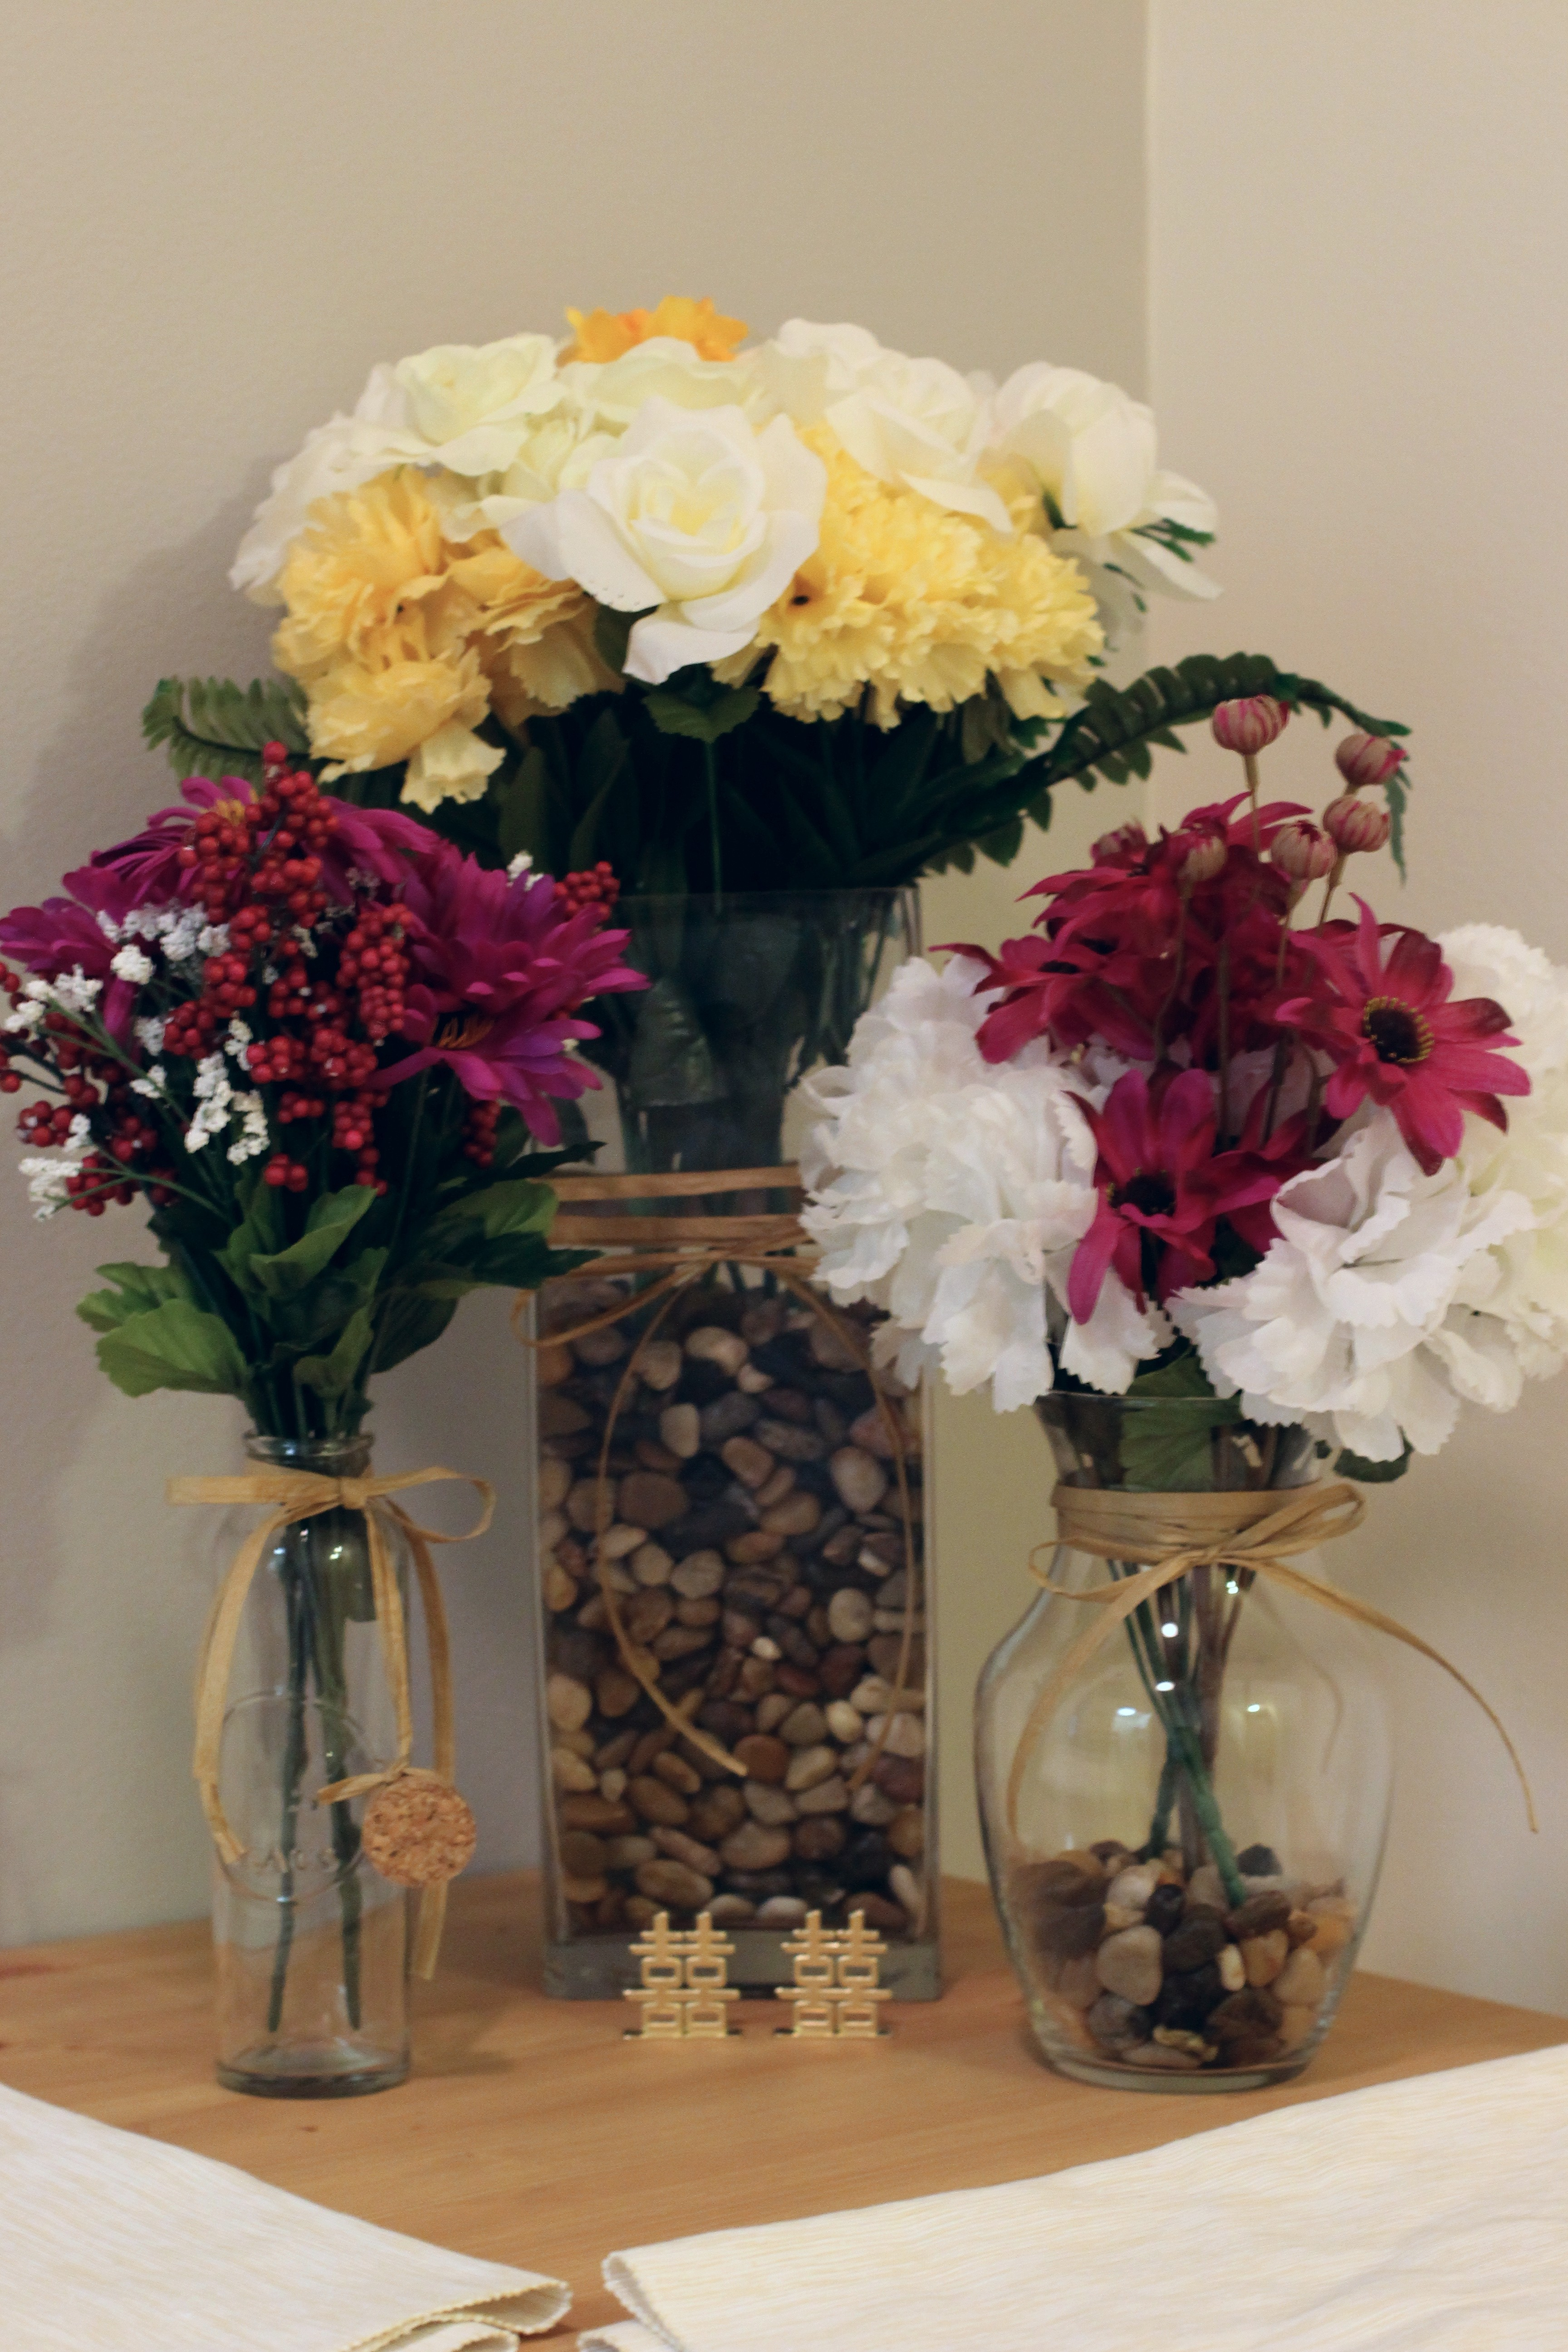 How To Make Floral Arrangements With Silk Flowers Credainatcon